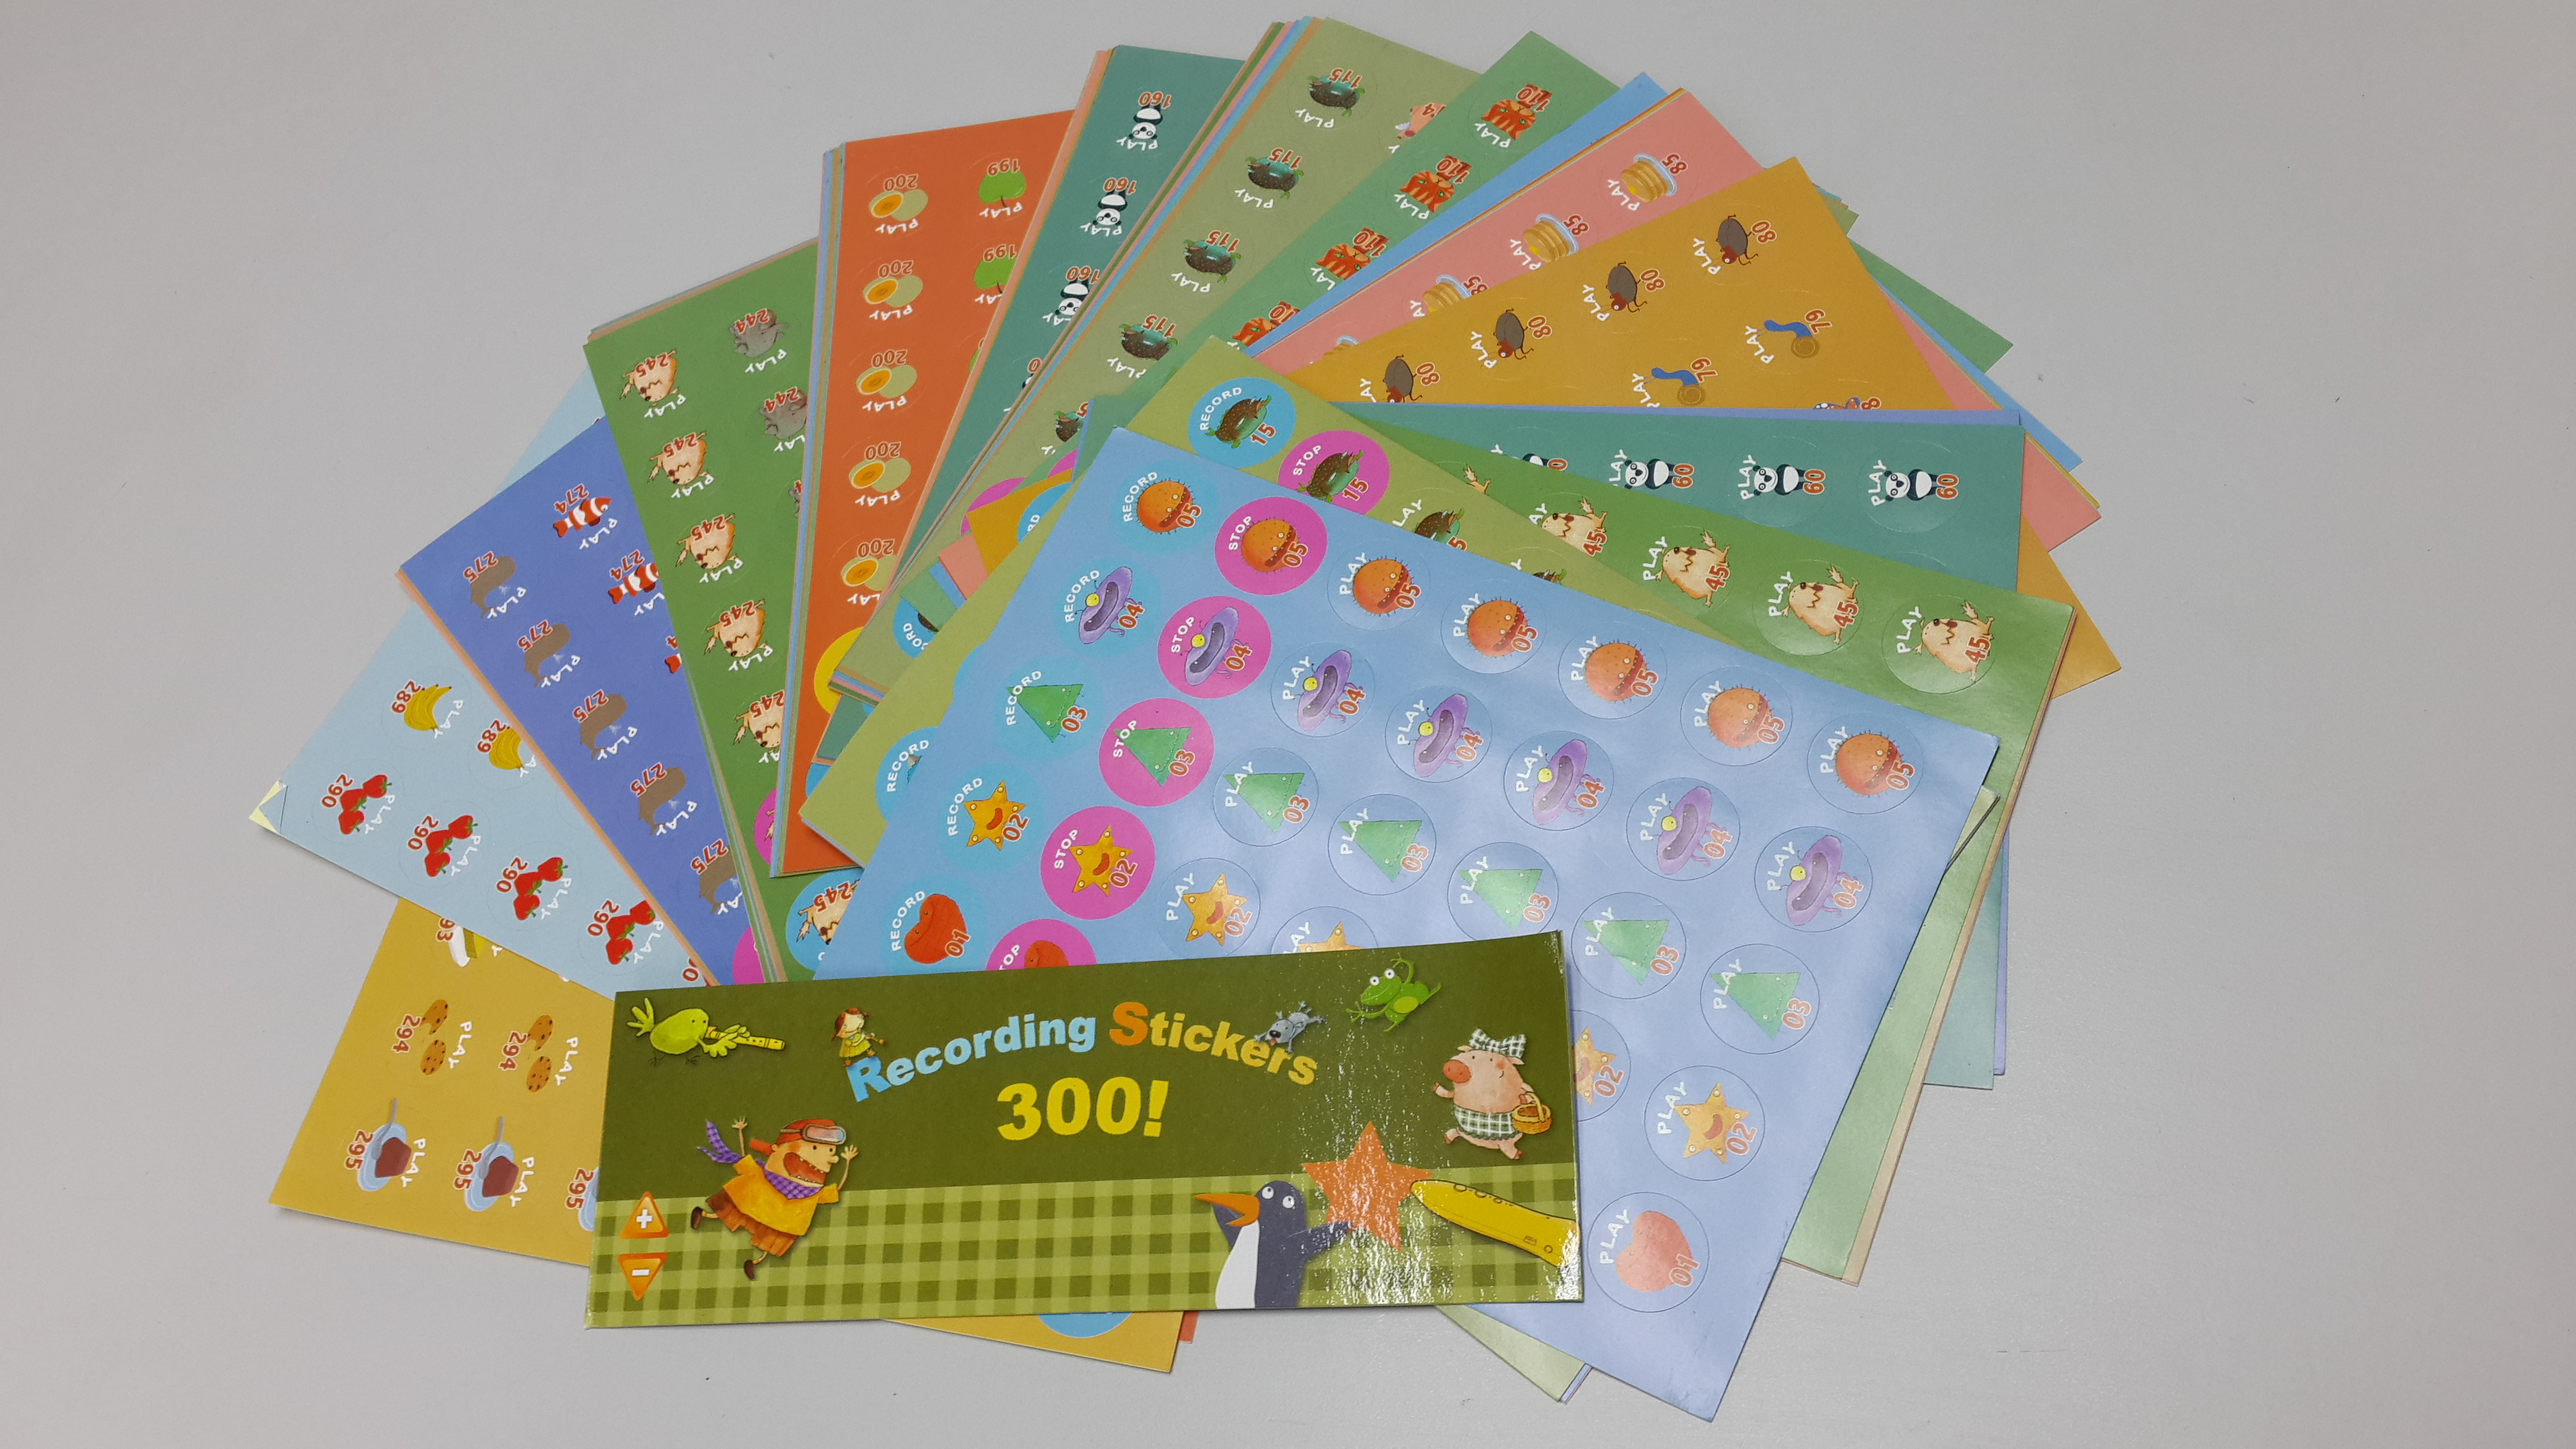 以$ 225購買 RASS LANGUAGE Recording Stickers 300 pcs 錄音貼紙 █免費工商送貨